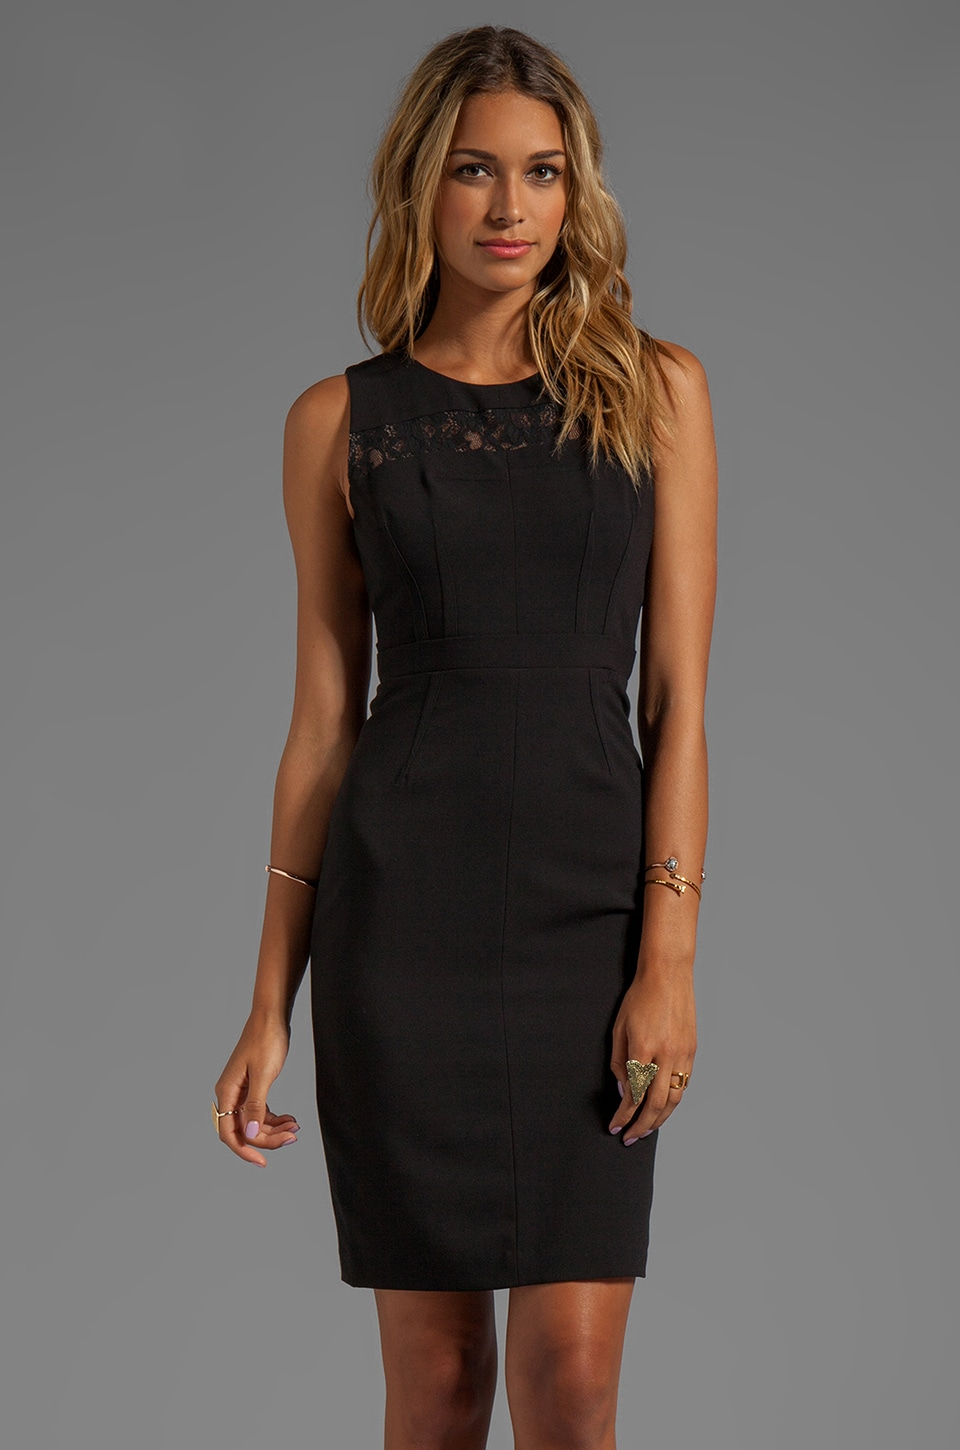 BCBGMAXAZRIA Cut-Out Dress in Black